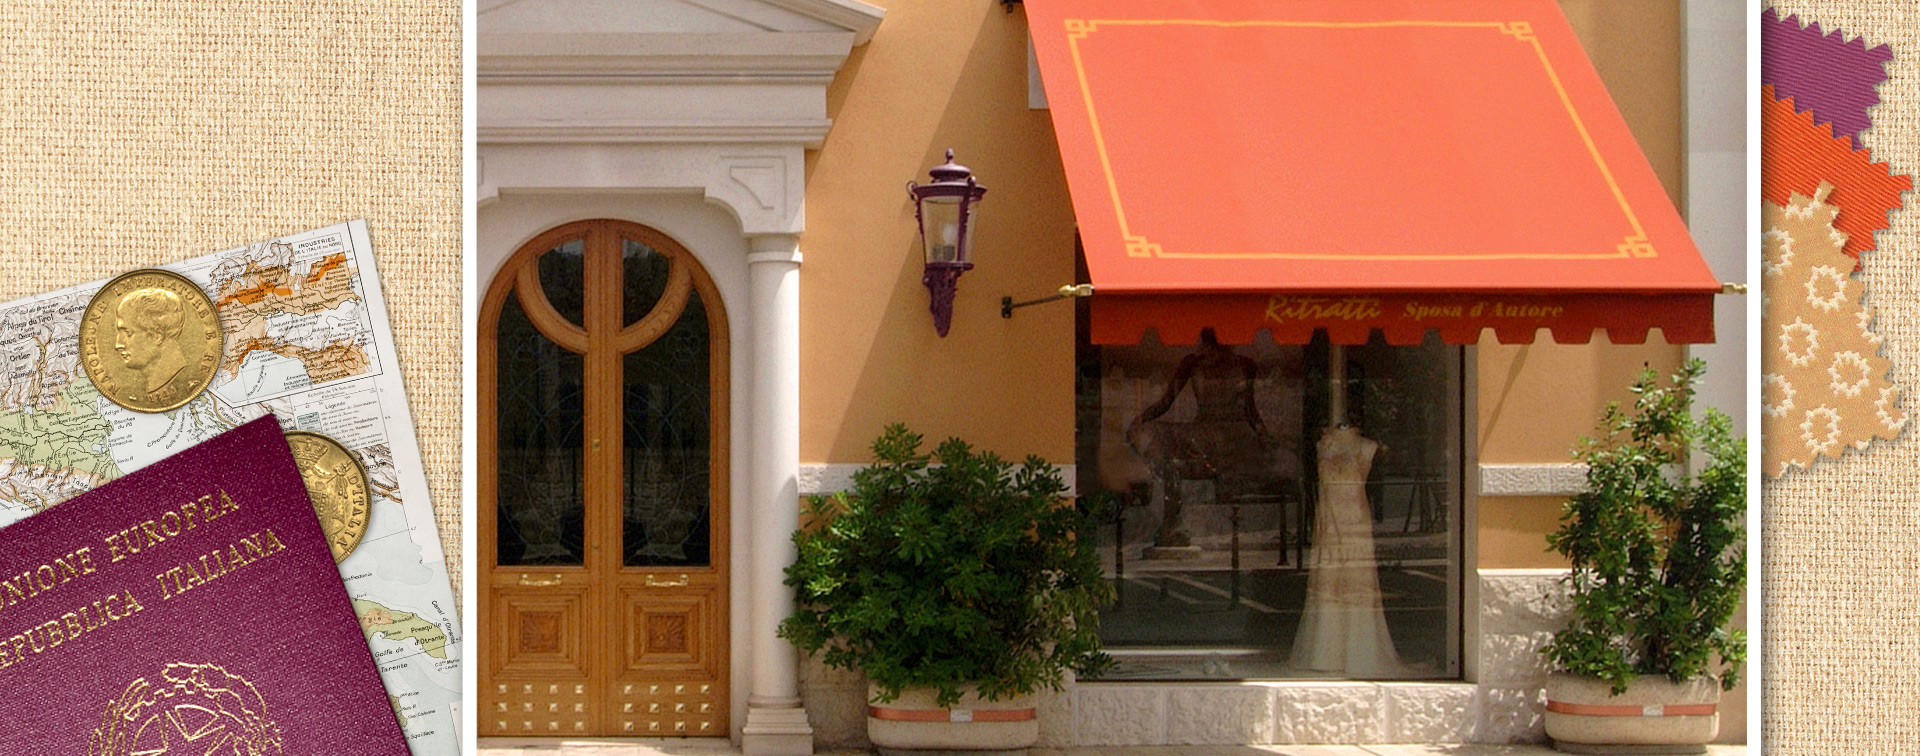 O Sole Mio Cucina Italiana Newberry Fl Tempotest Fabrics For Awnings Marine And Outdoor Furniture